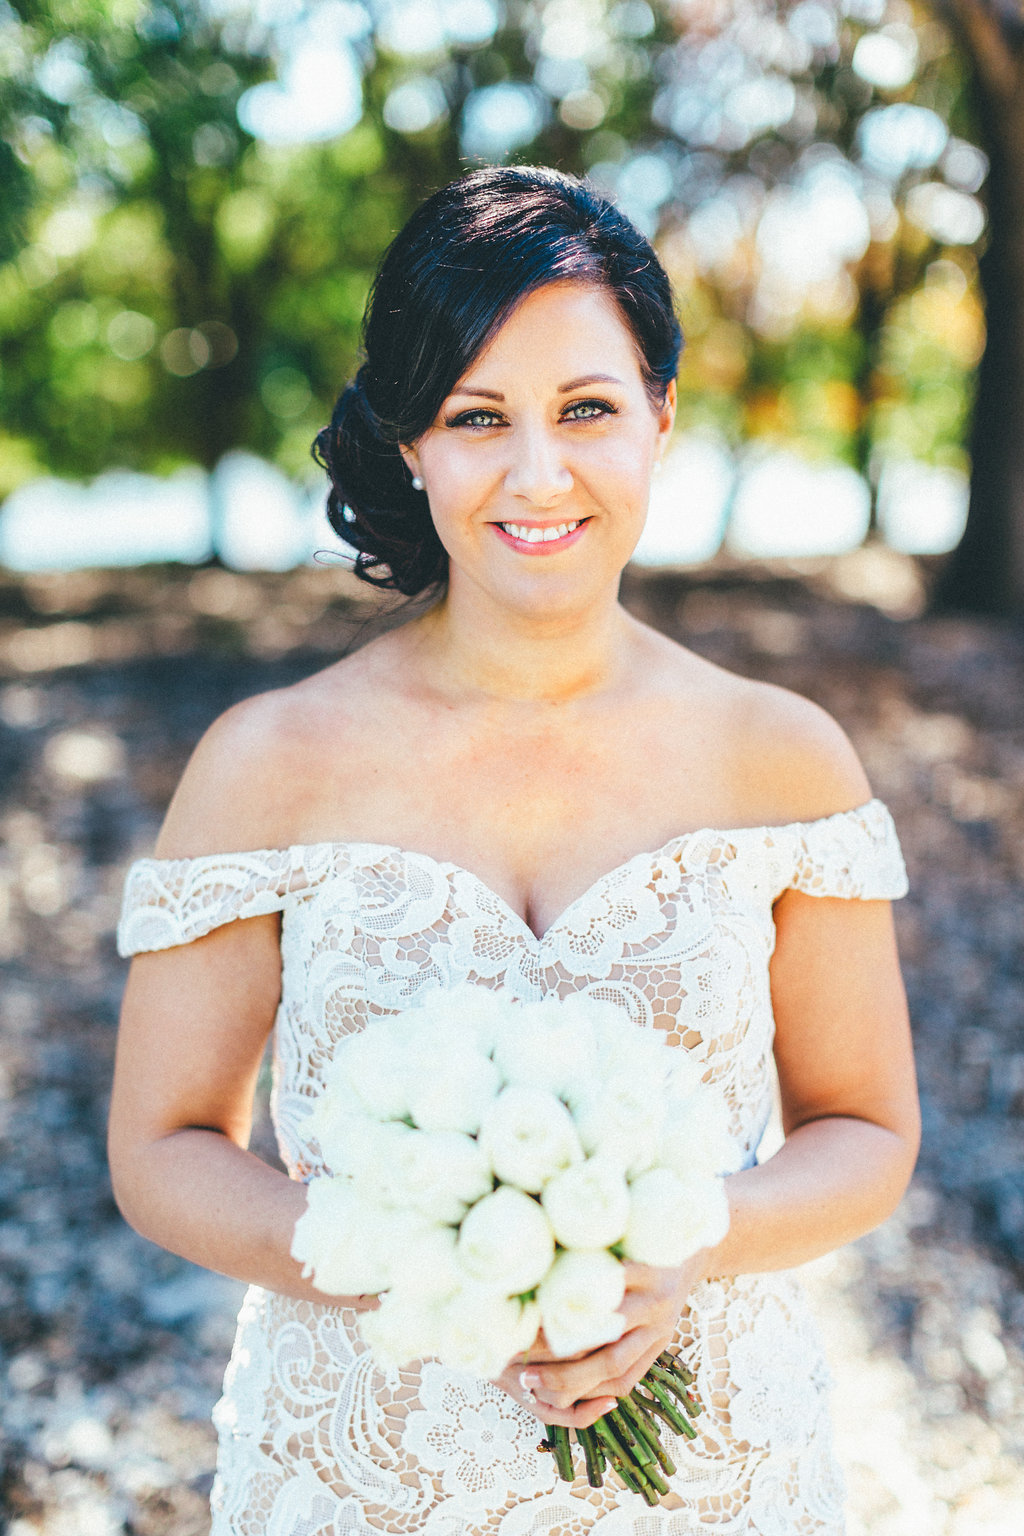 Bride with flowers juste before getting married - Canberra Small Weddings